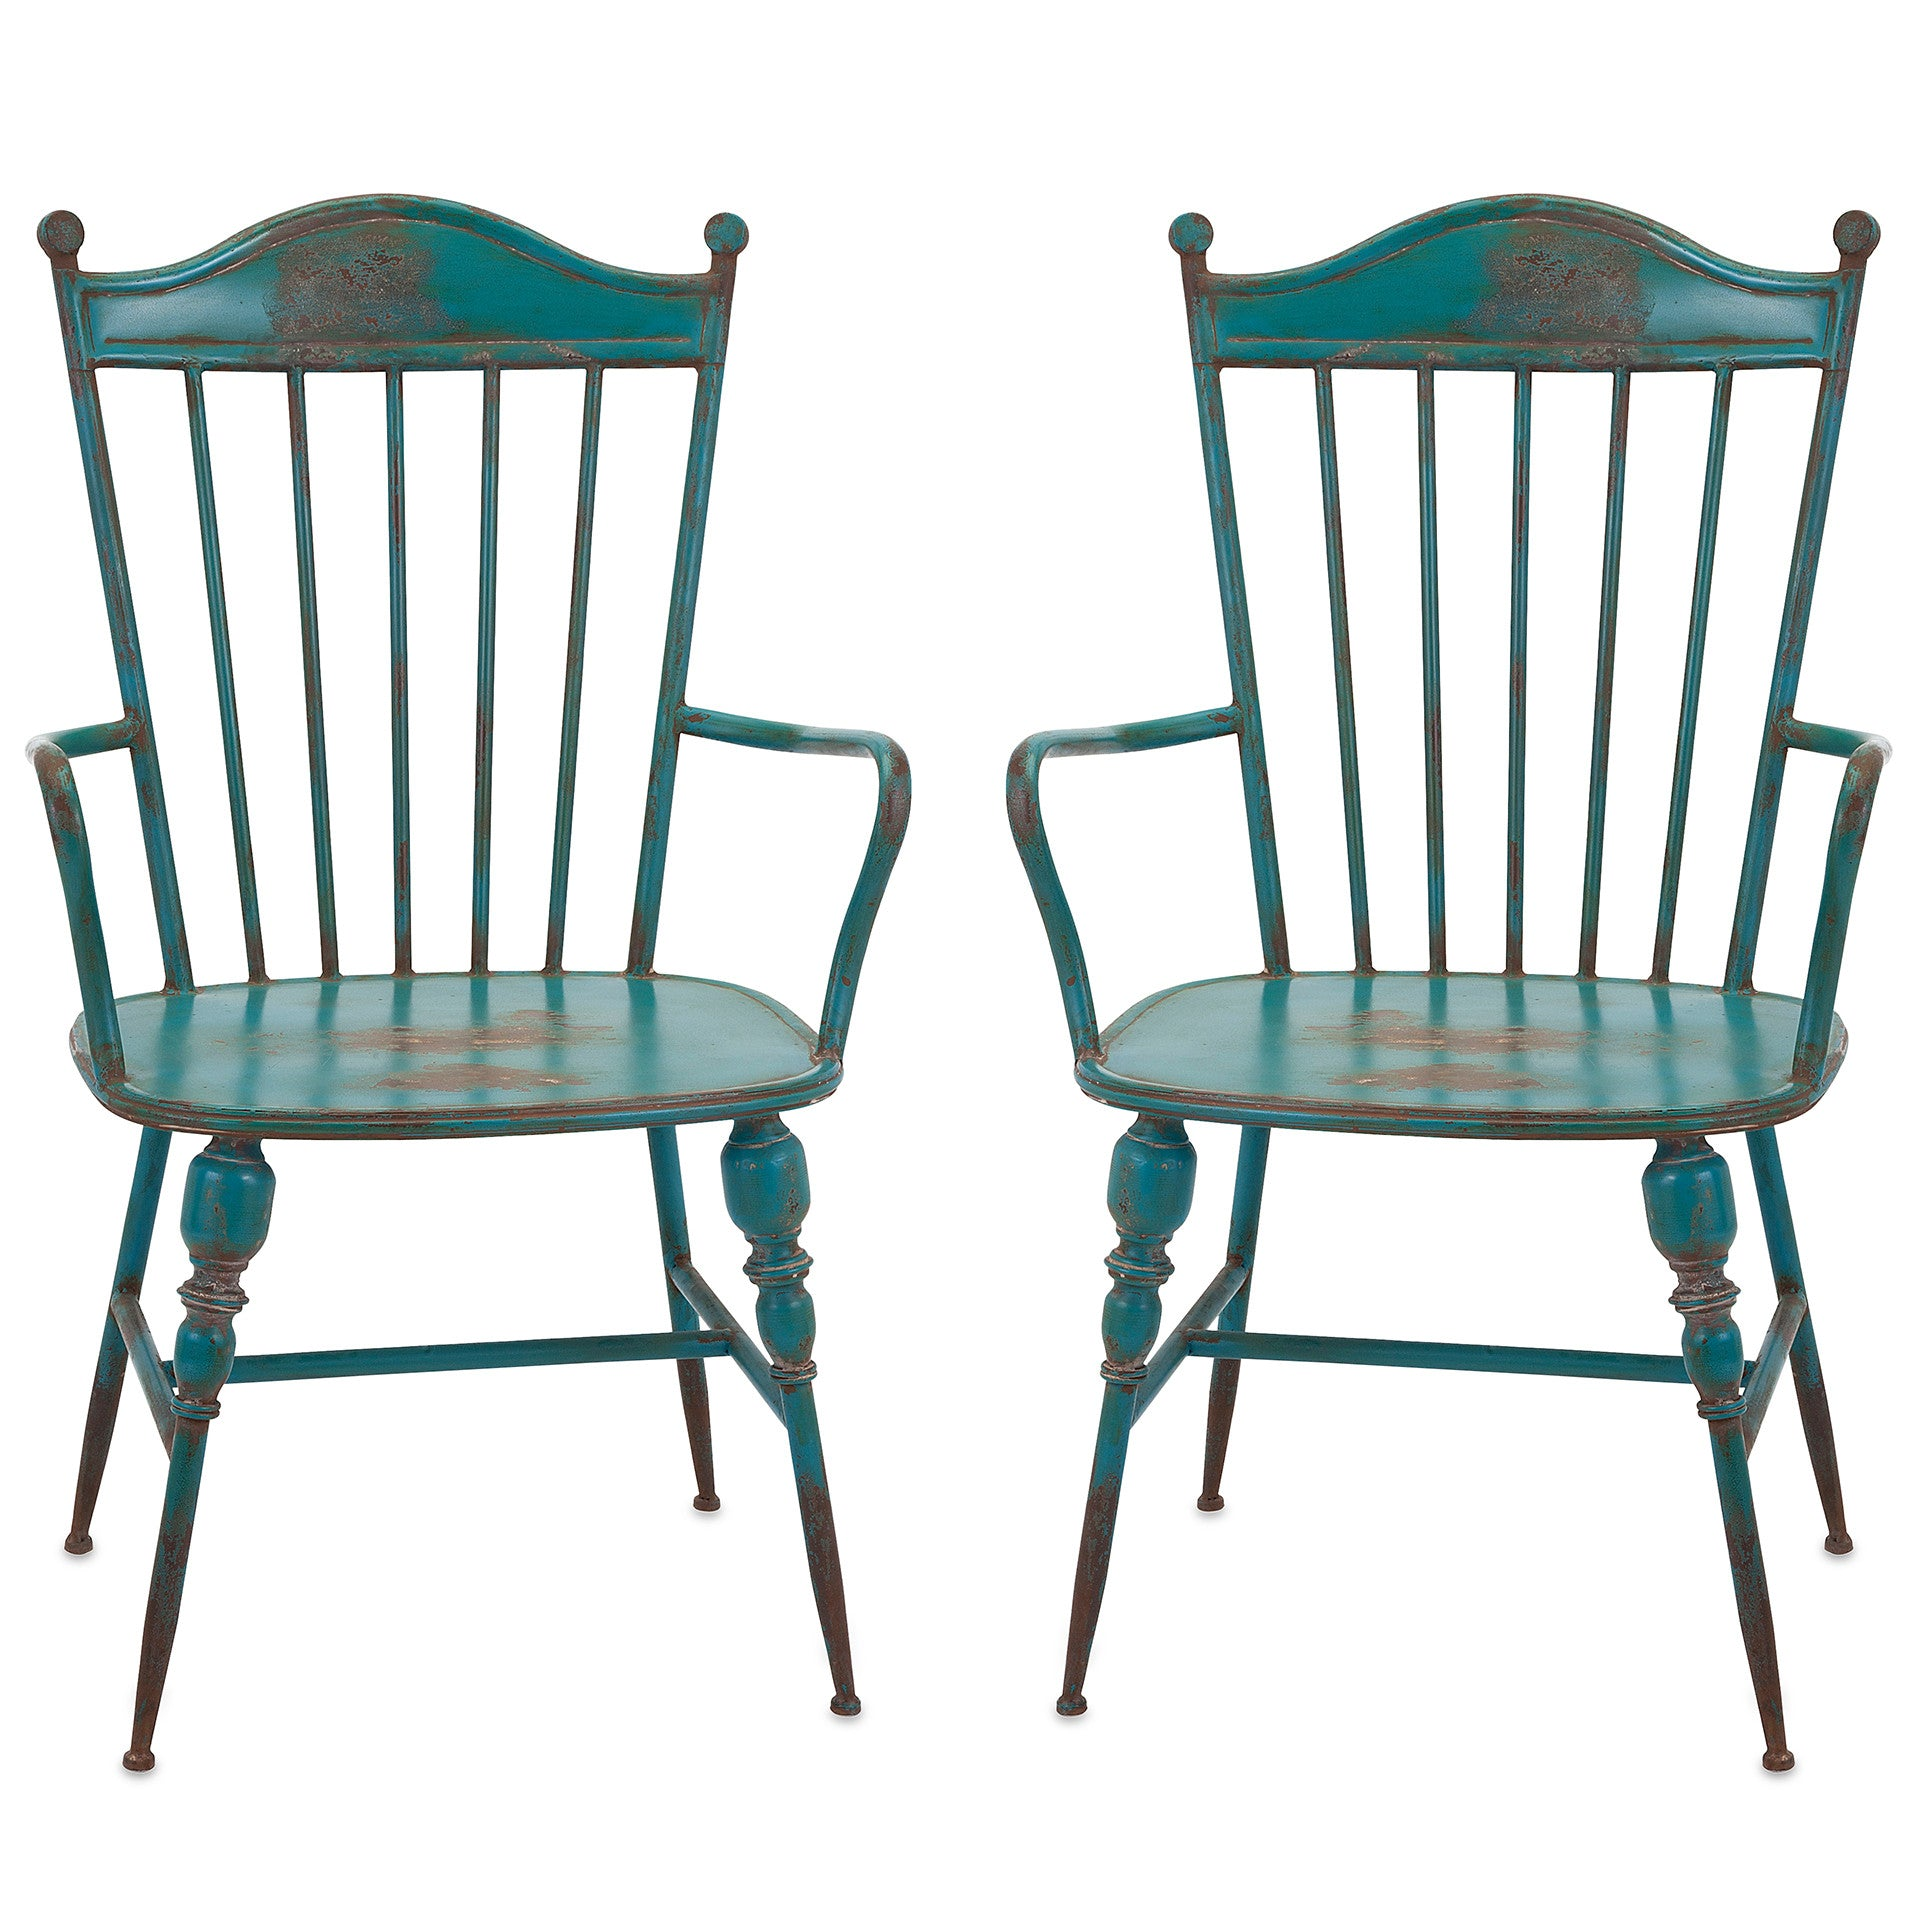 Rustic Teal Blue Metal Farmhouse Industrial Modern Arm Chairs   Set Of 2